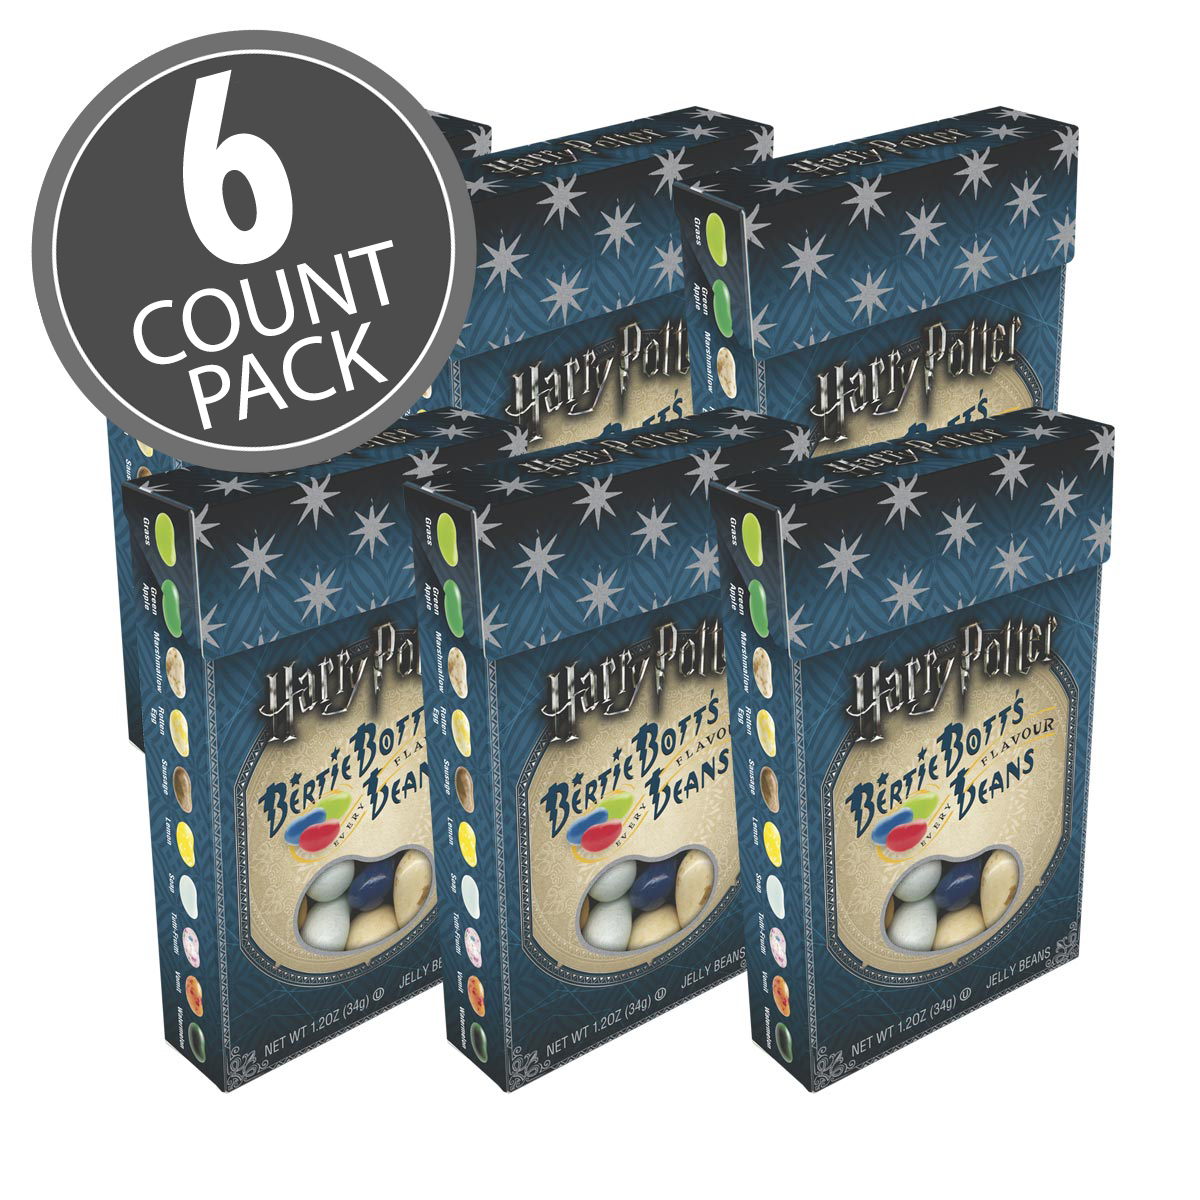 Bean Boozled Spinner Game Harry Potter Chocolate Frog Jelly Refill Dispenser Bertie Botts Every Flavour Beans 12 Oz Box 6 Pack Product Belly